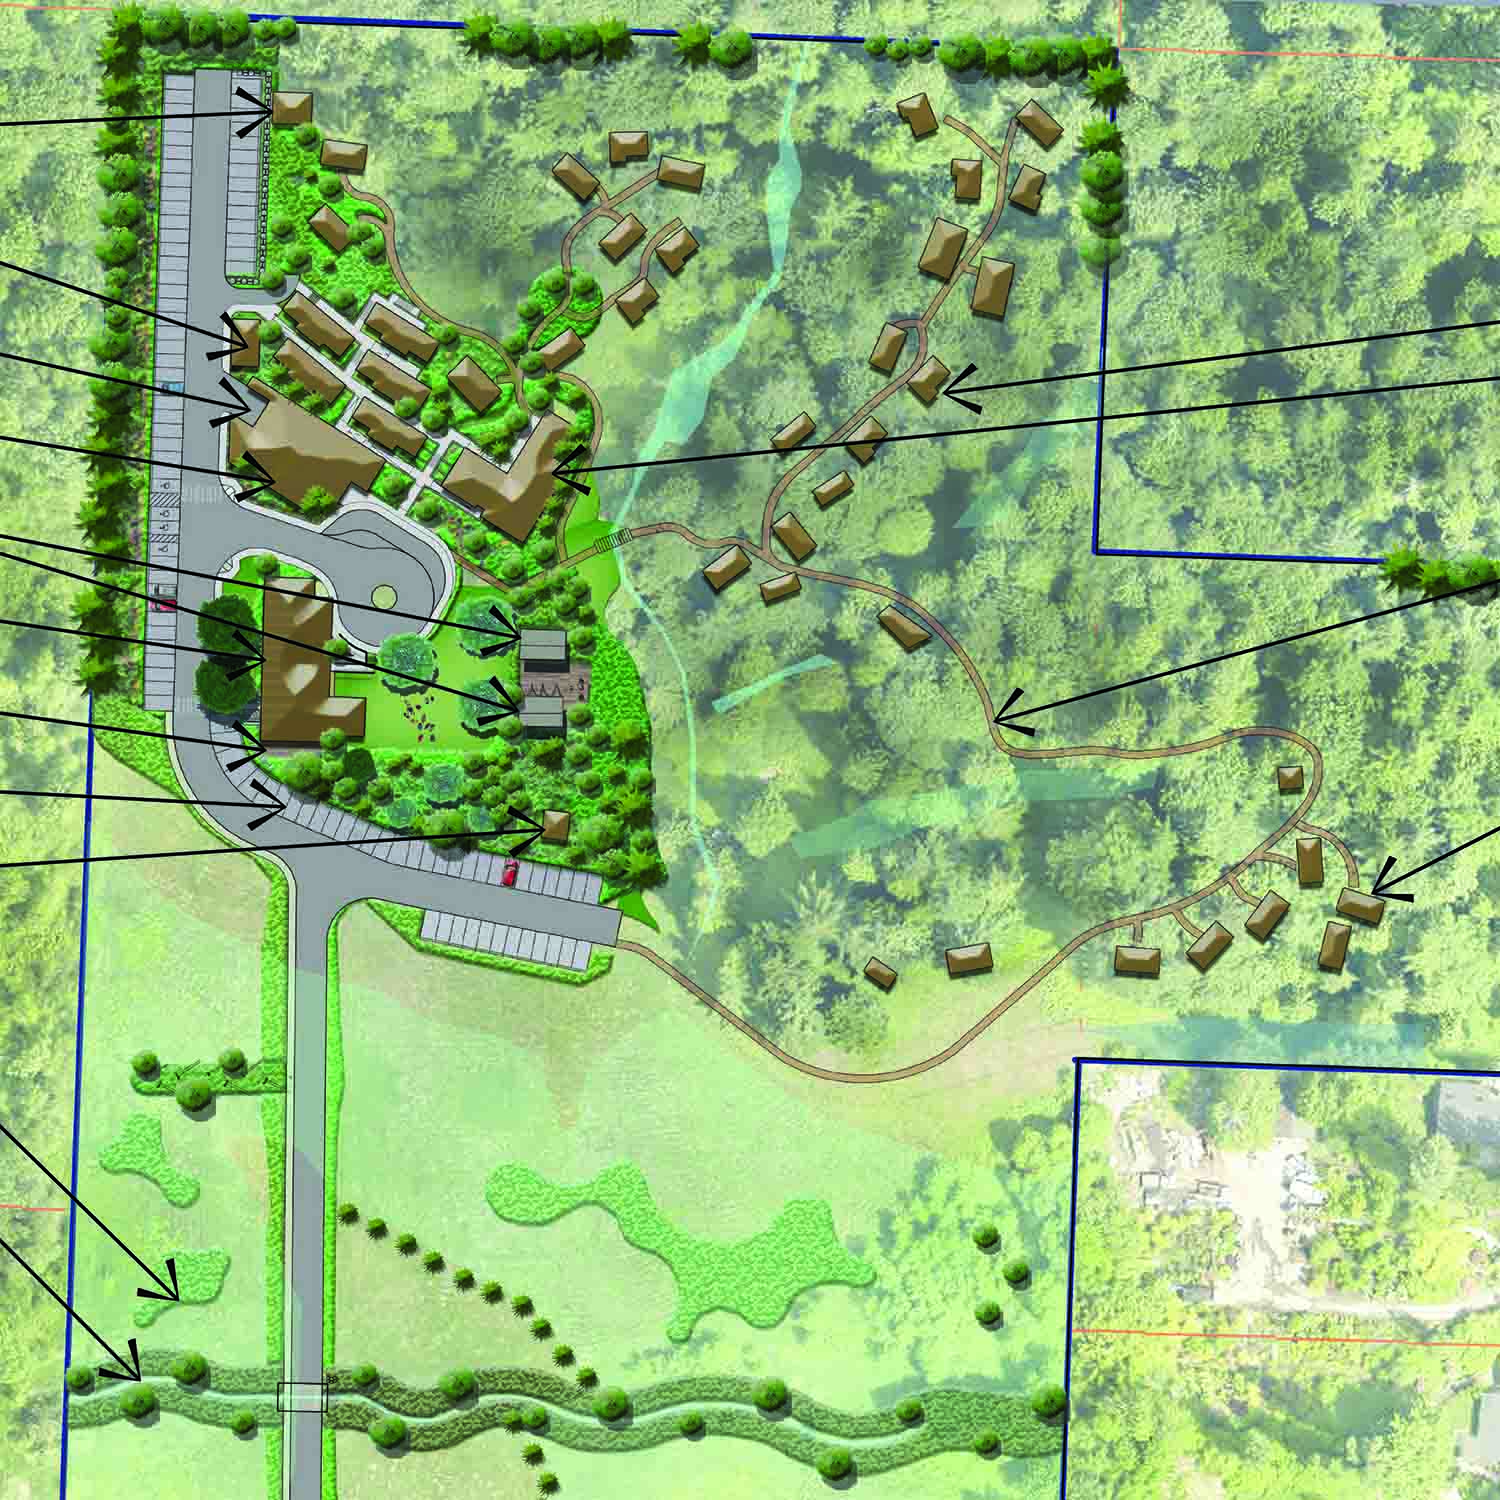 2018 Conceptual Site plan for Treehouse Resort and Spa